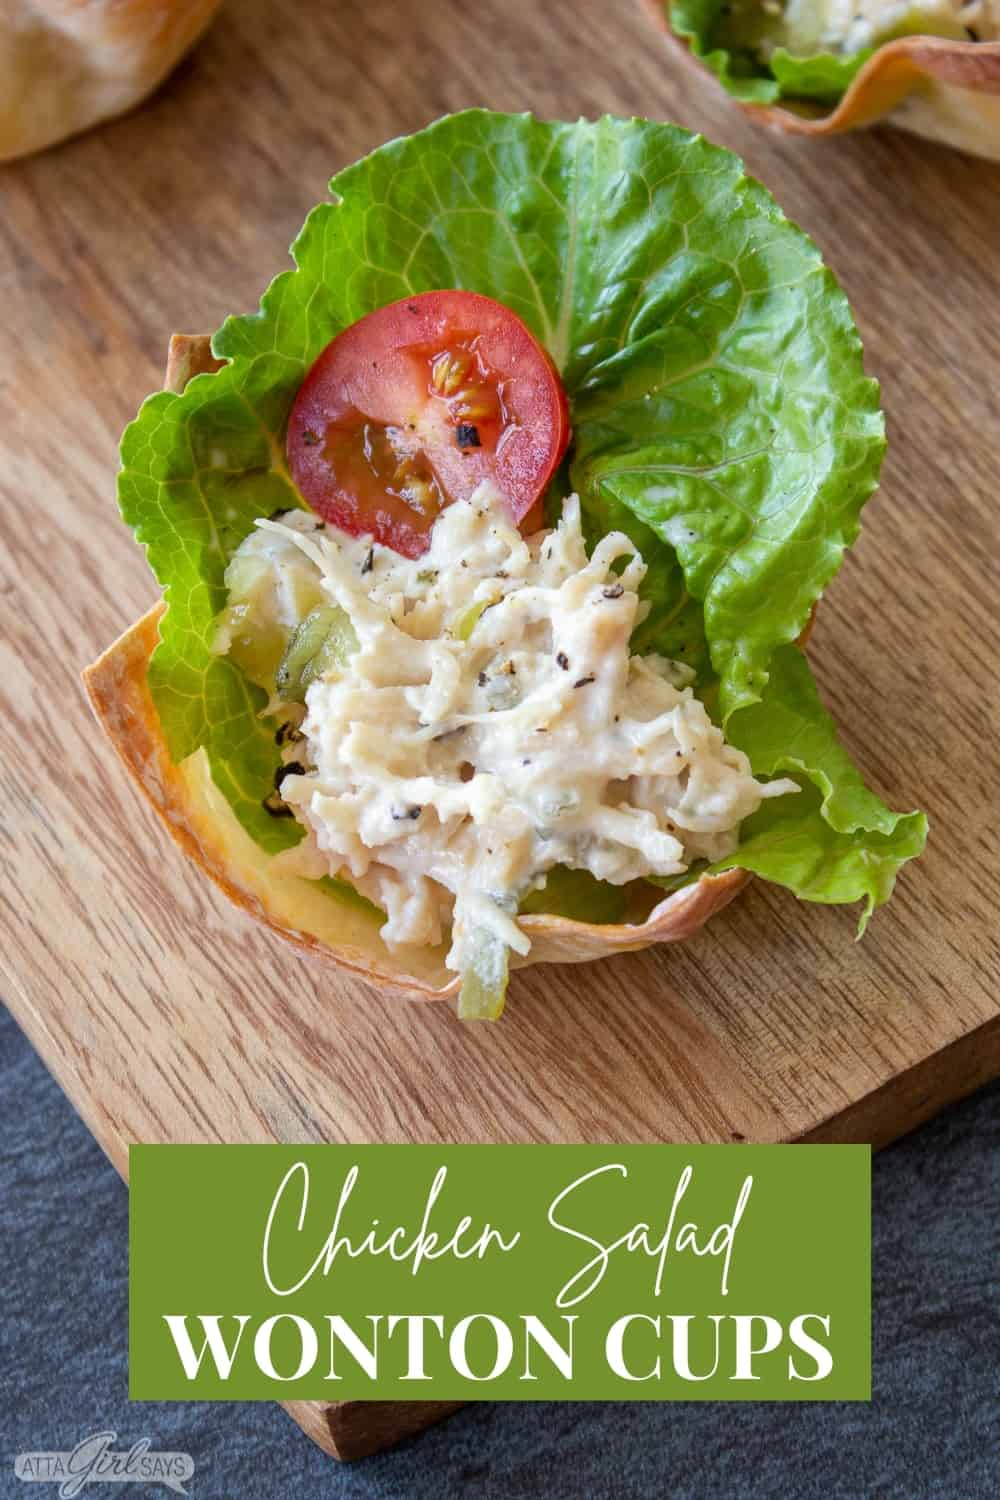 chicken salad, lettuce and a tomato slice in a baked wonton cup